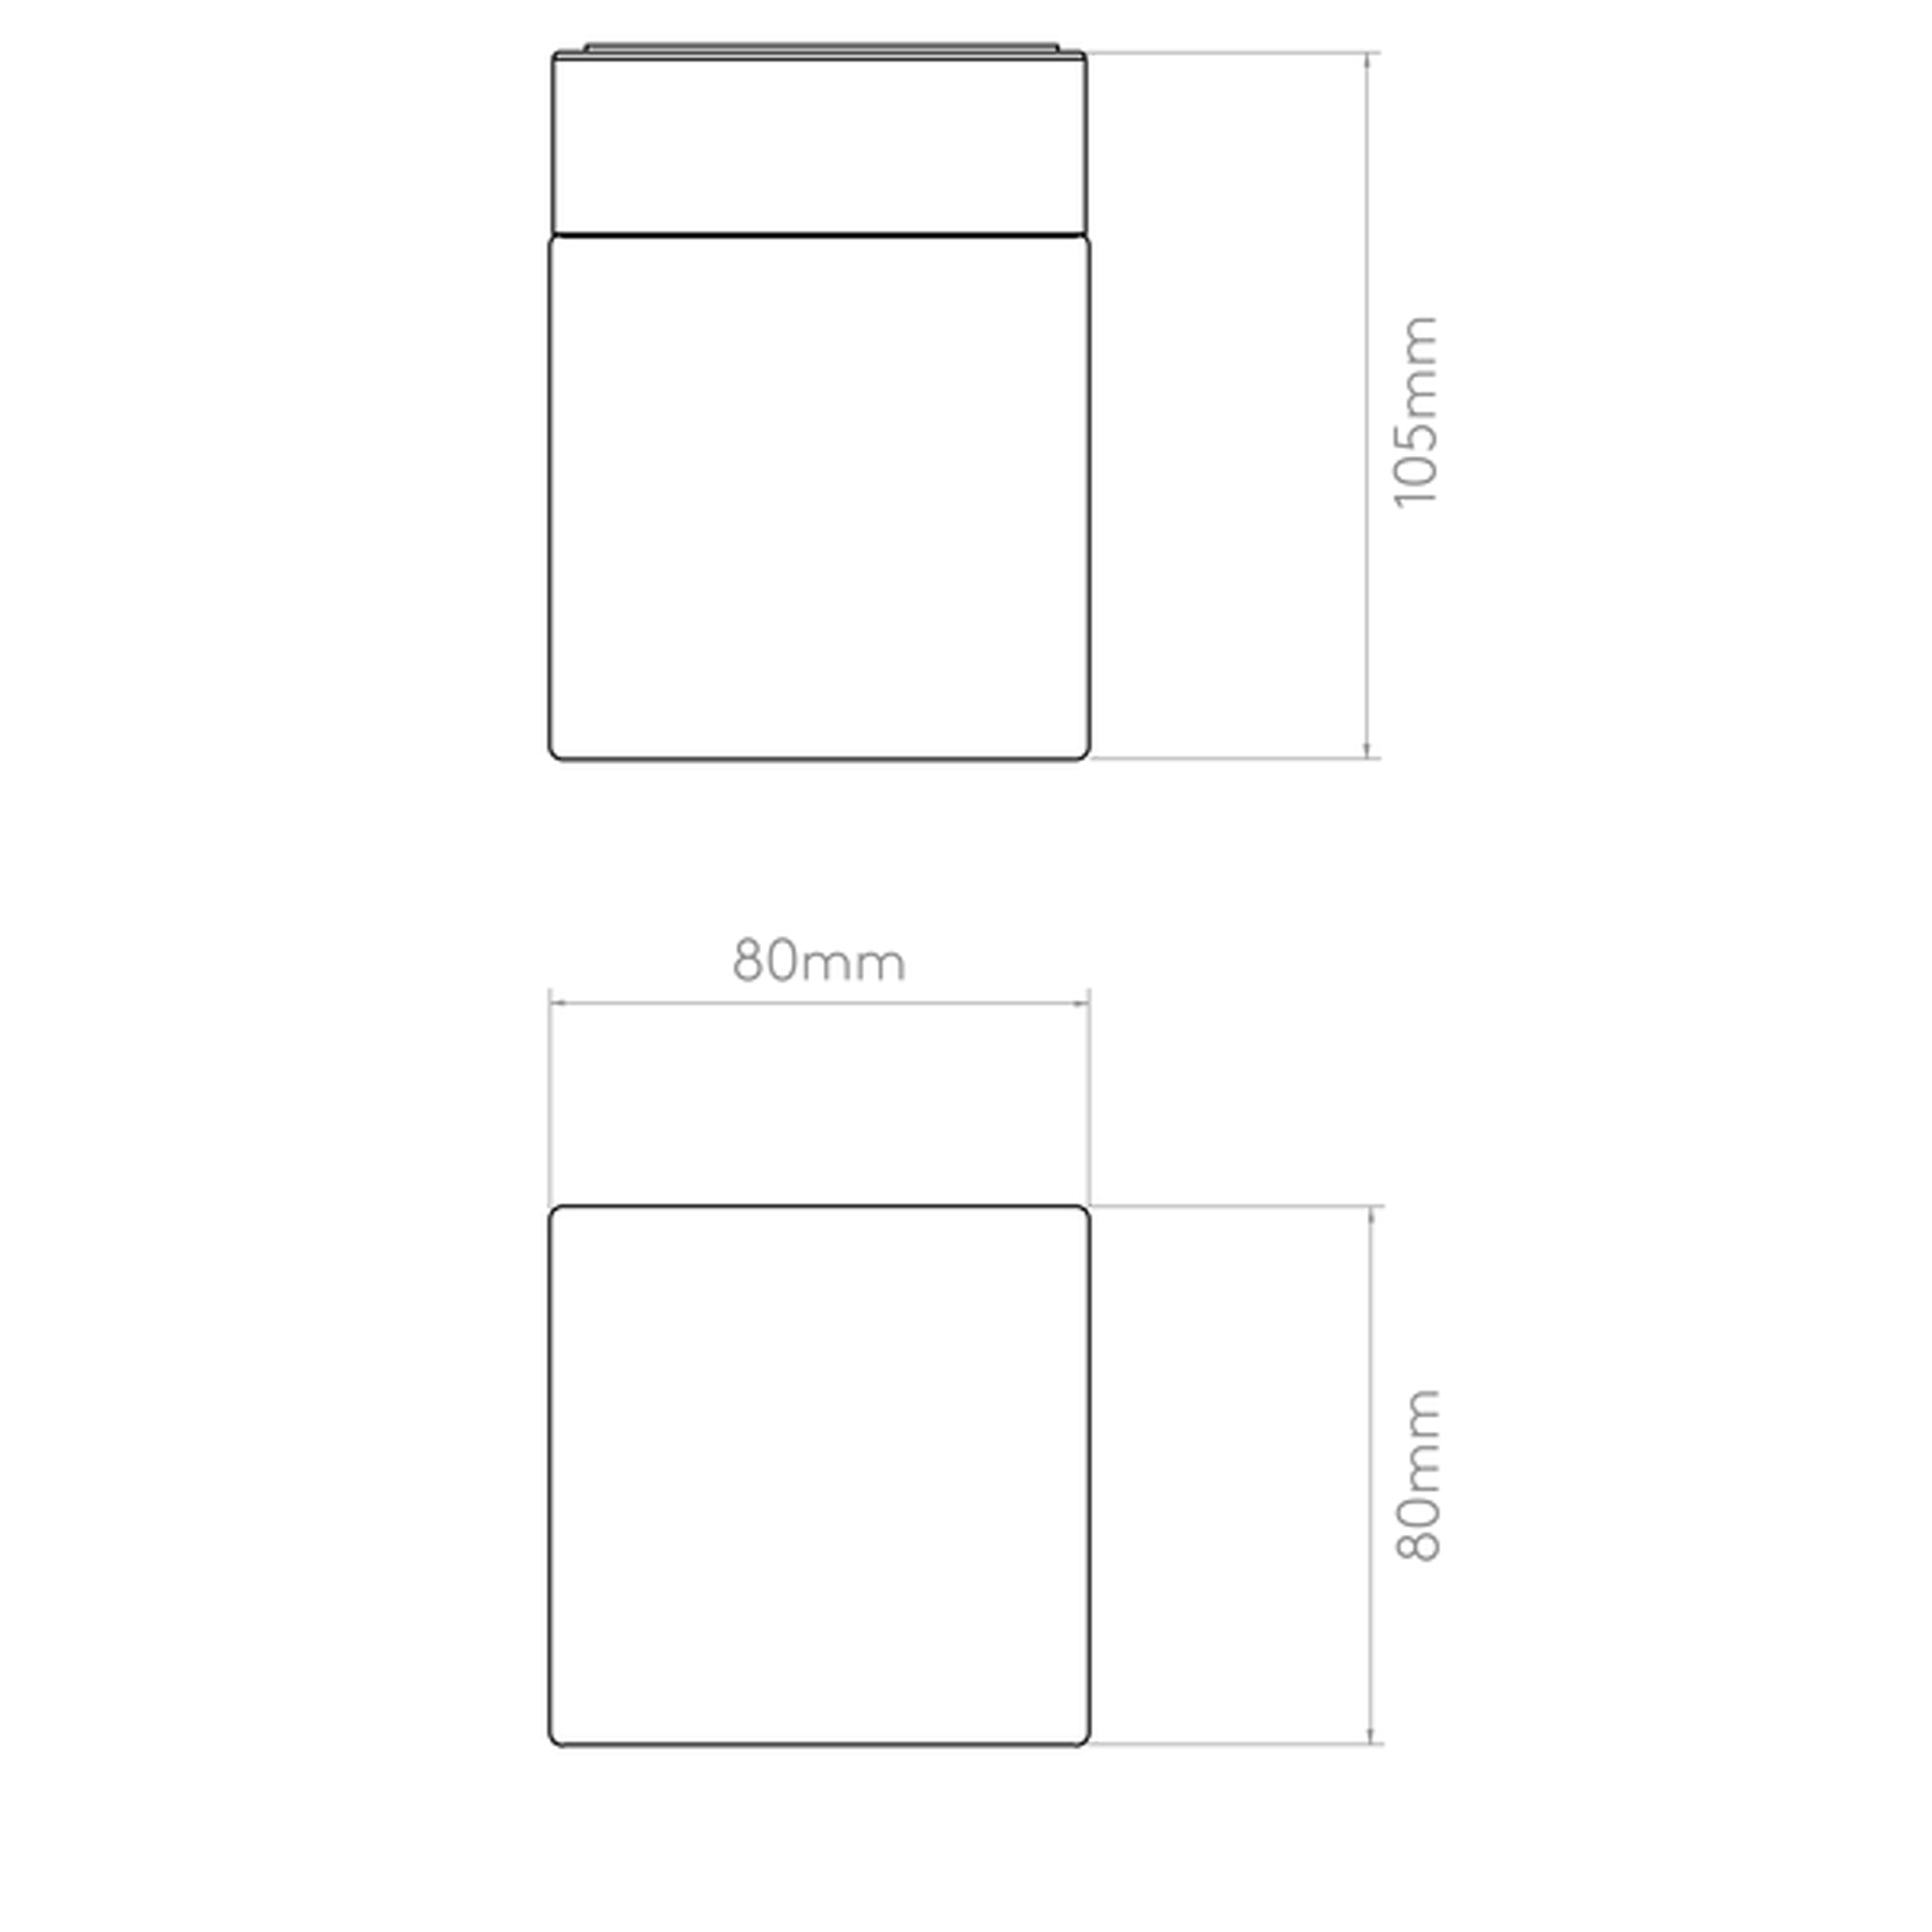 Astro Cube Wall Light Line Drawing